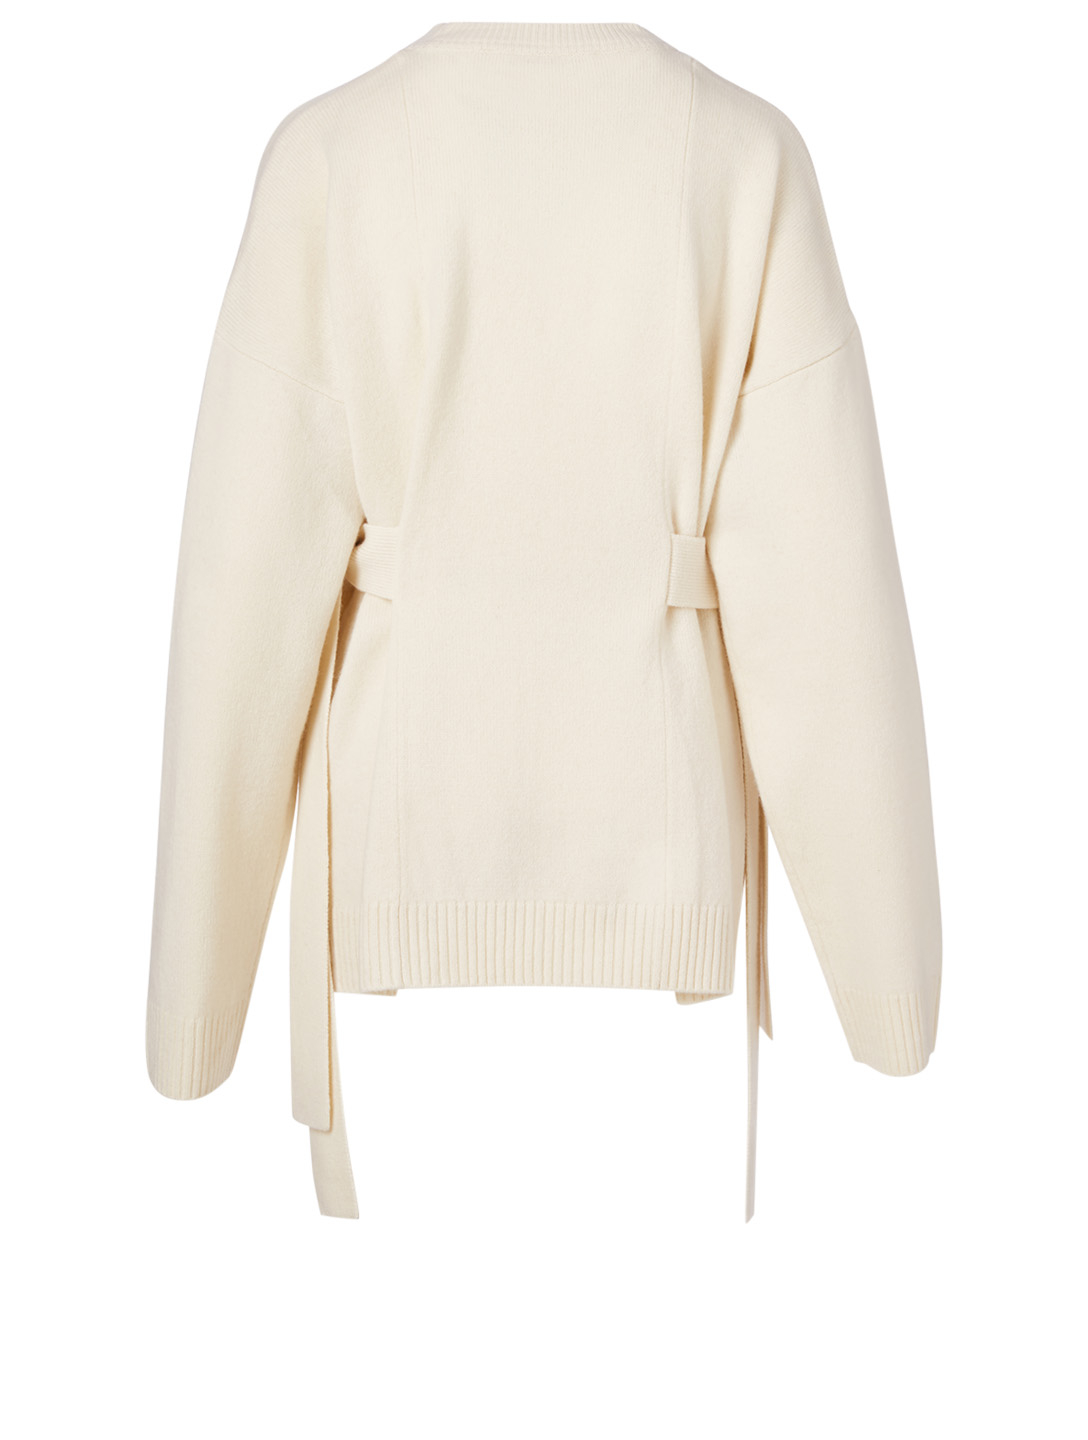 MCQ ALEXANDER MCQUEEN Wool And Cashmere Sweater Women's White